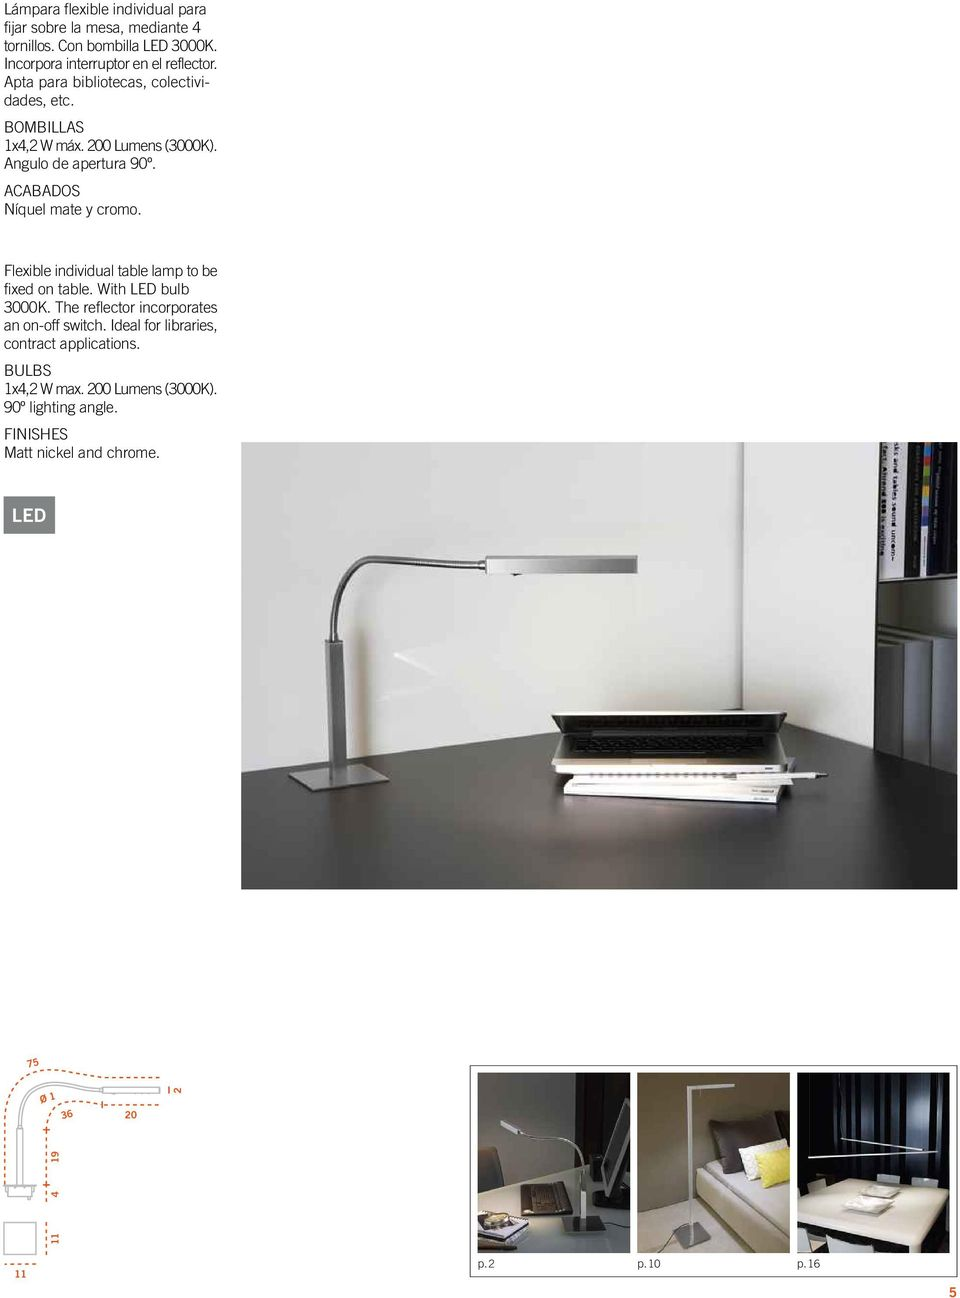 Flexible individual table lamp to be fixed on table. With LED bulb 3000K. The reflector incorporates an on-off switch.